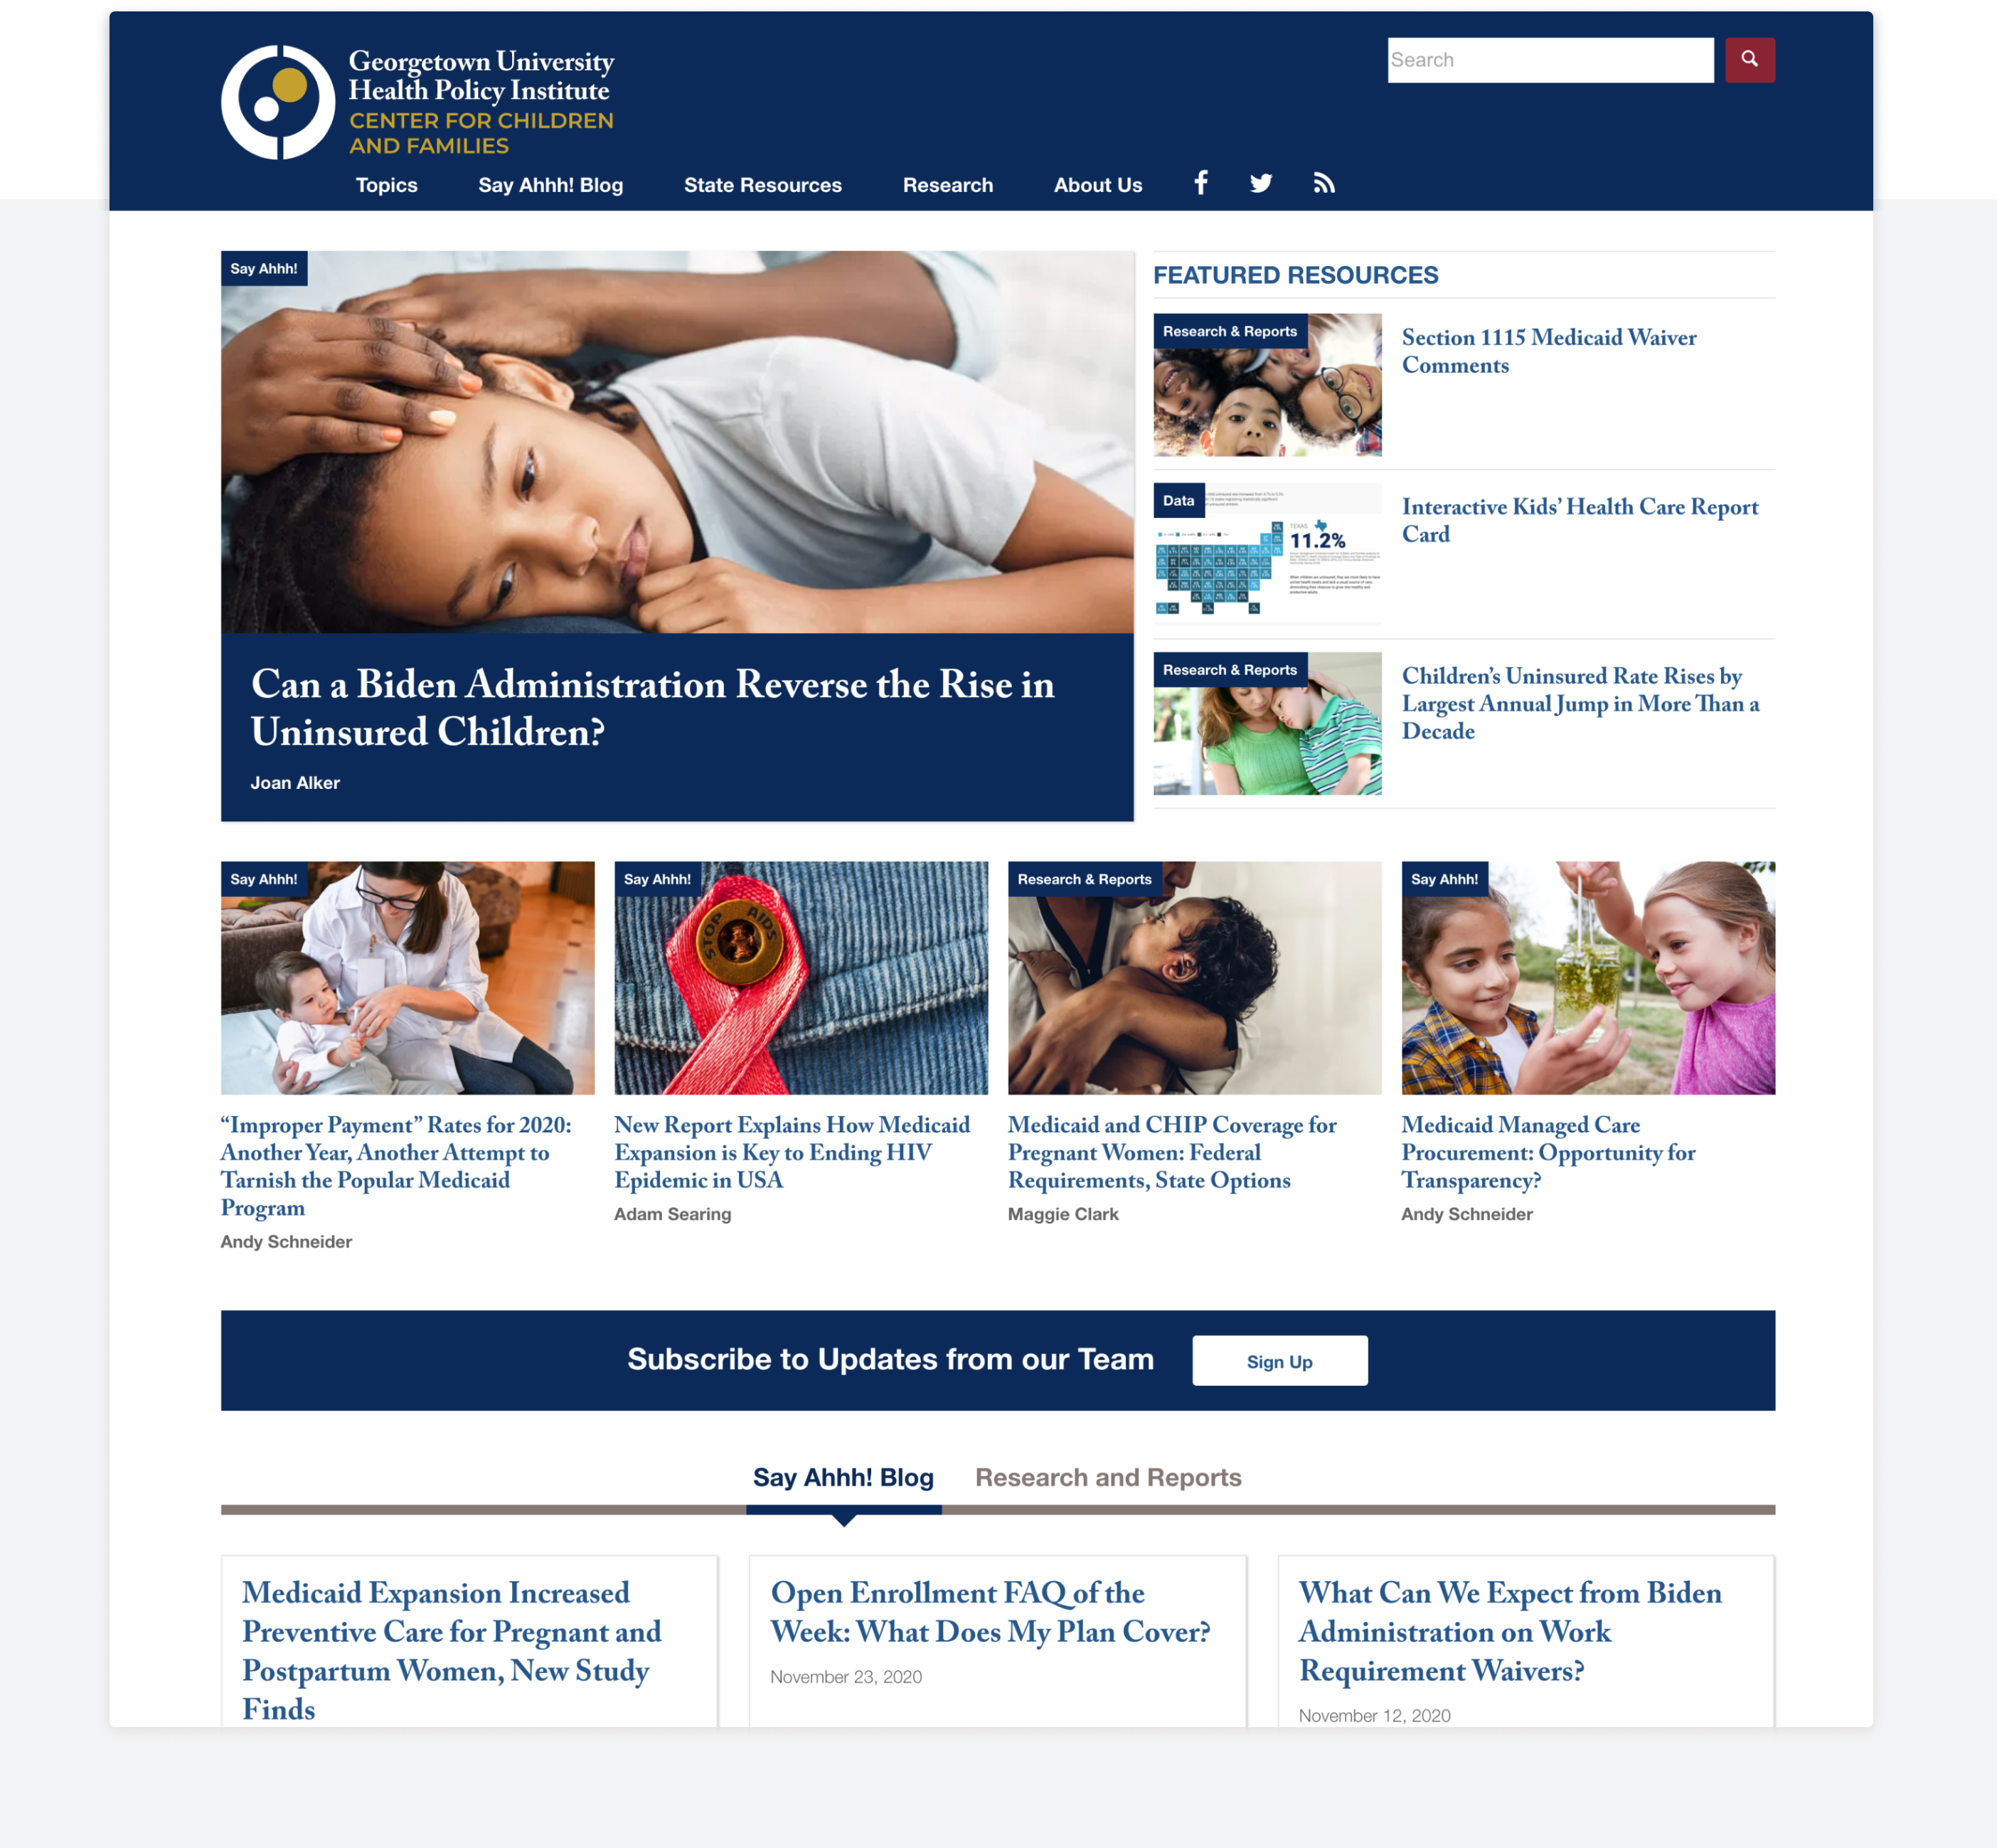 The main page of Georgetown CCF with navigation, featured article, and additional content